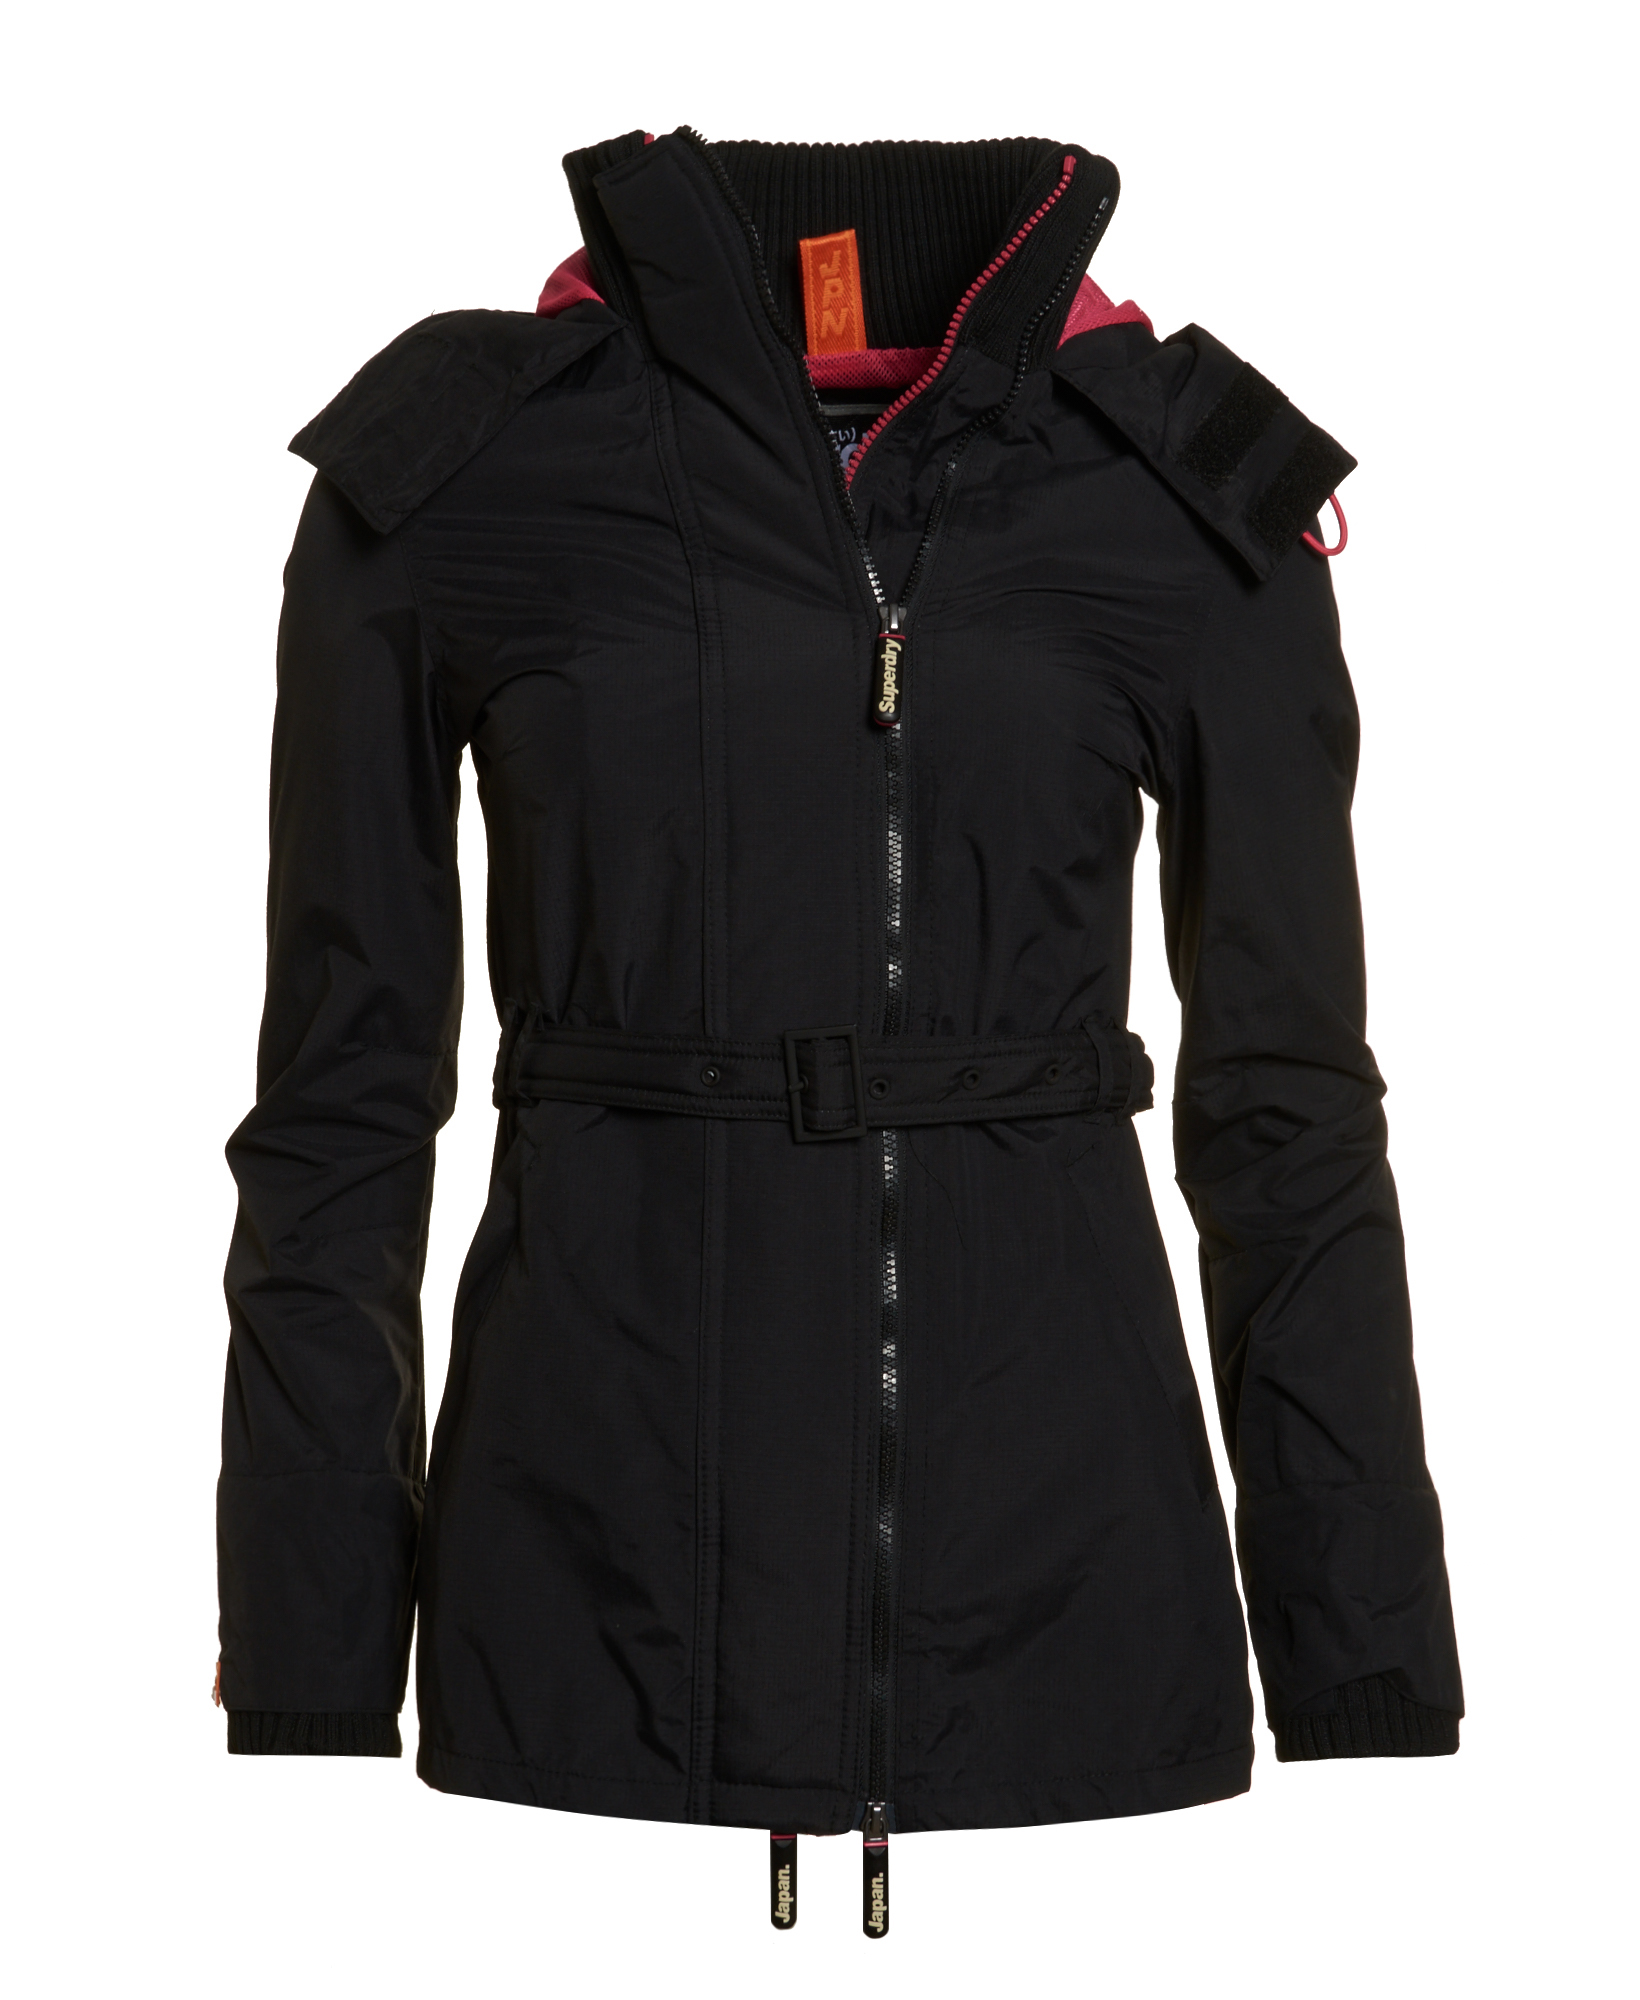 New Womens Superdry Pop Zip Wind Mac Jacket Black | eBay